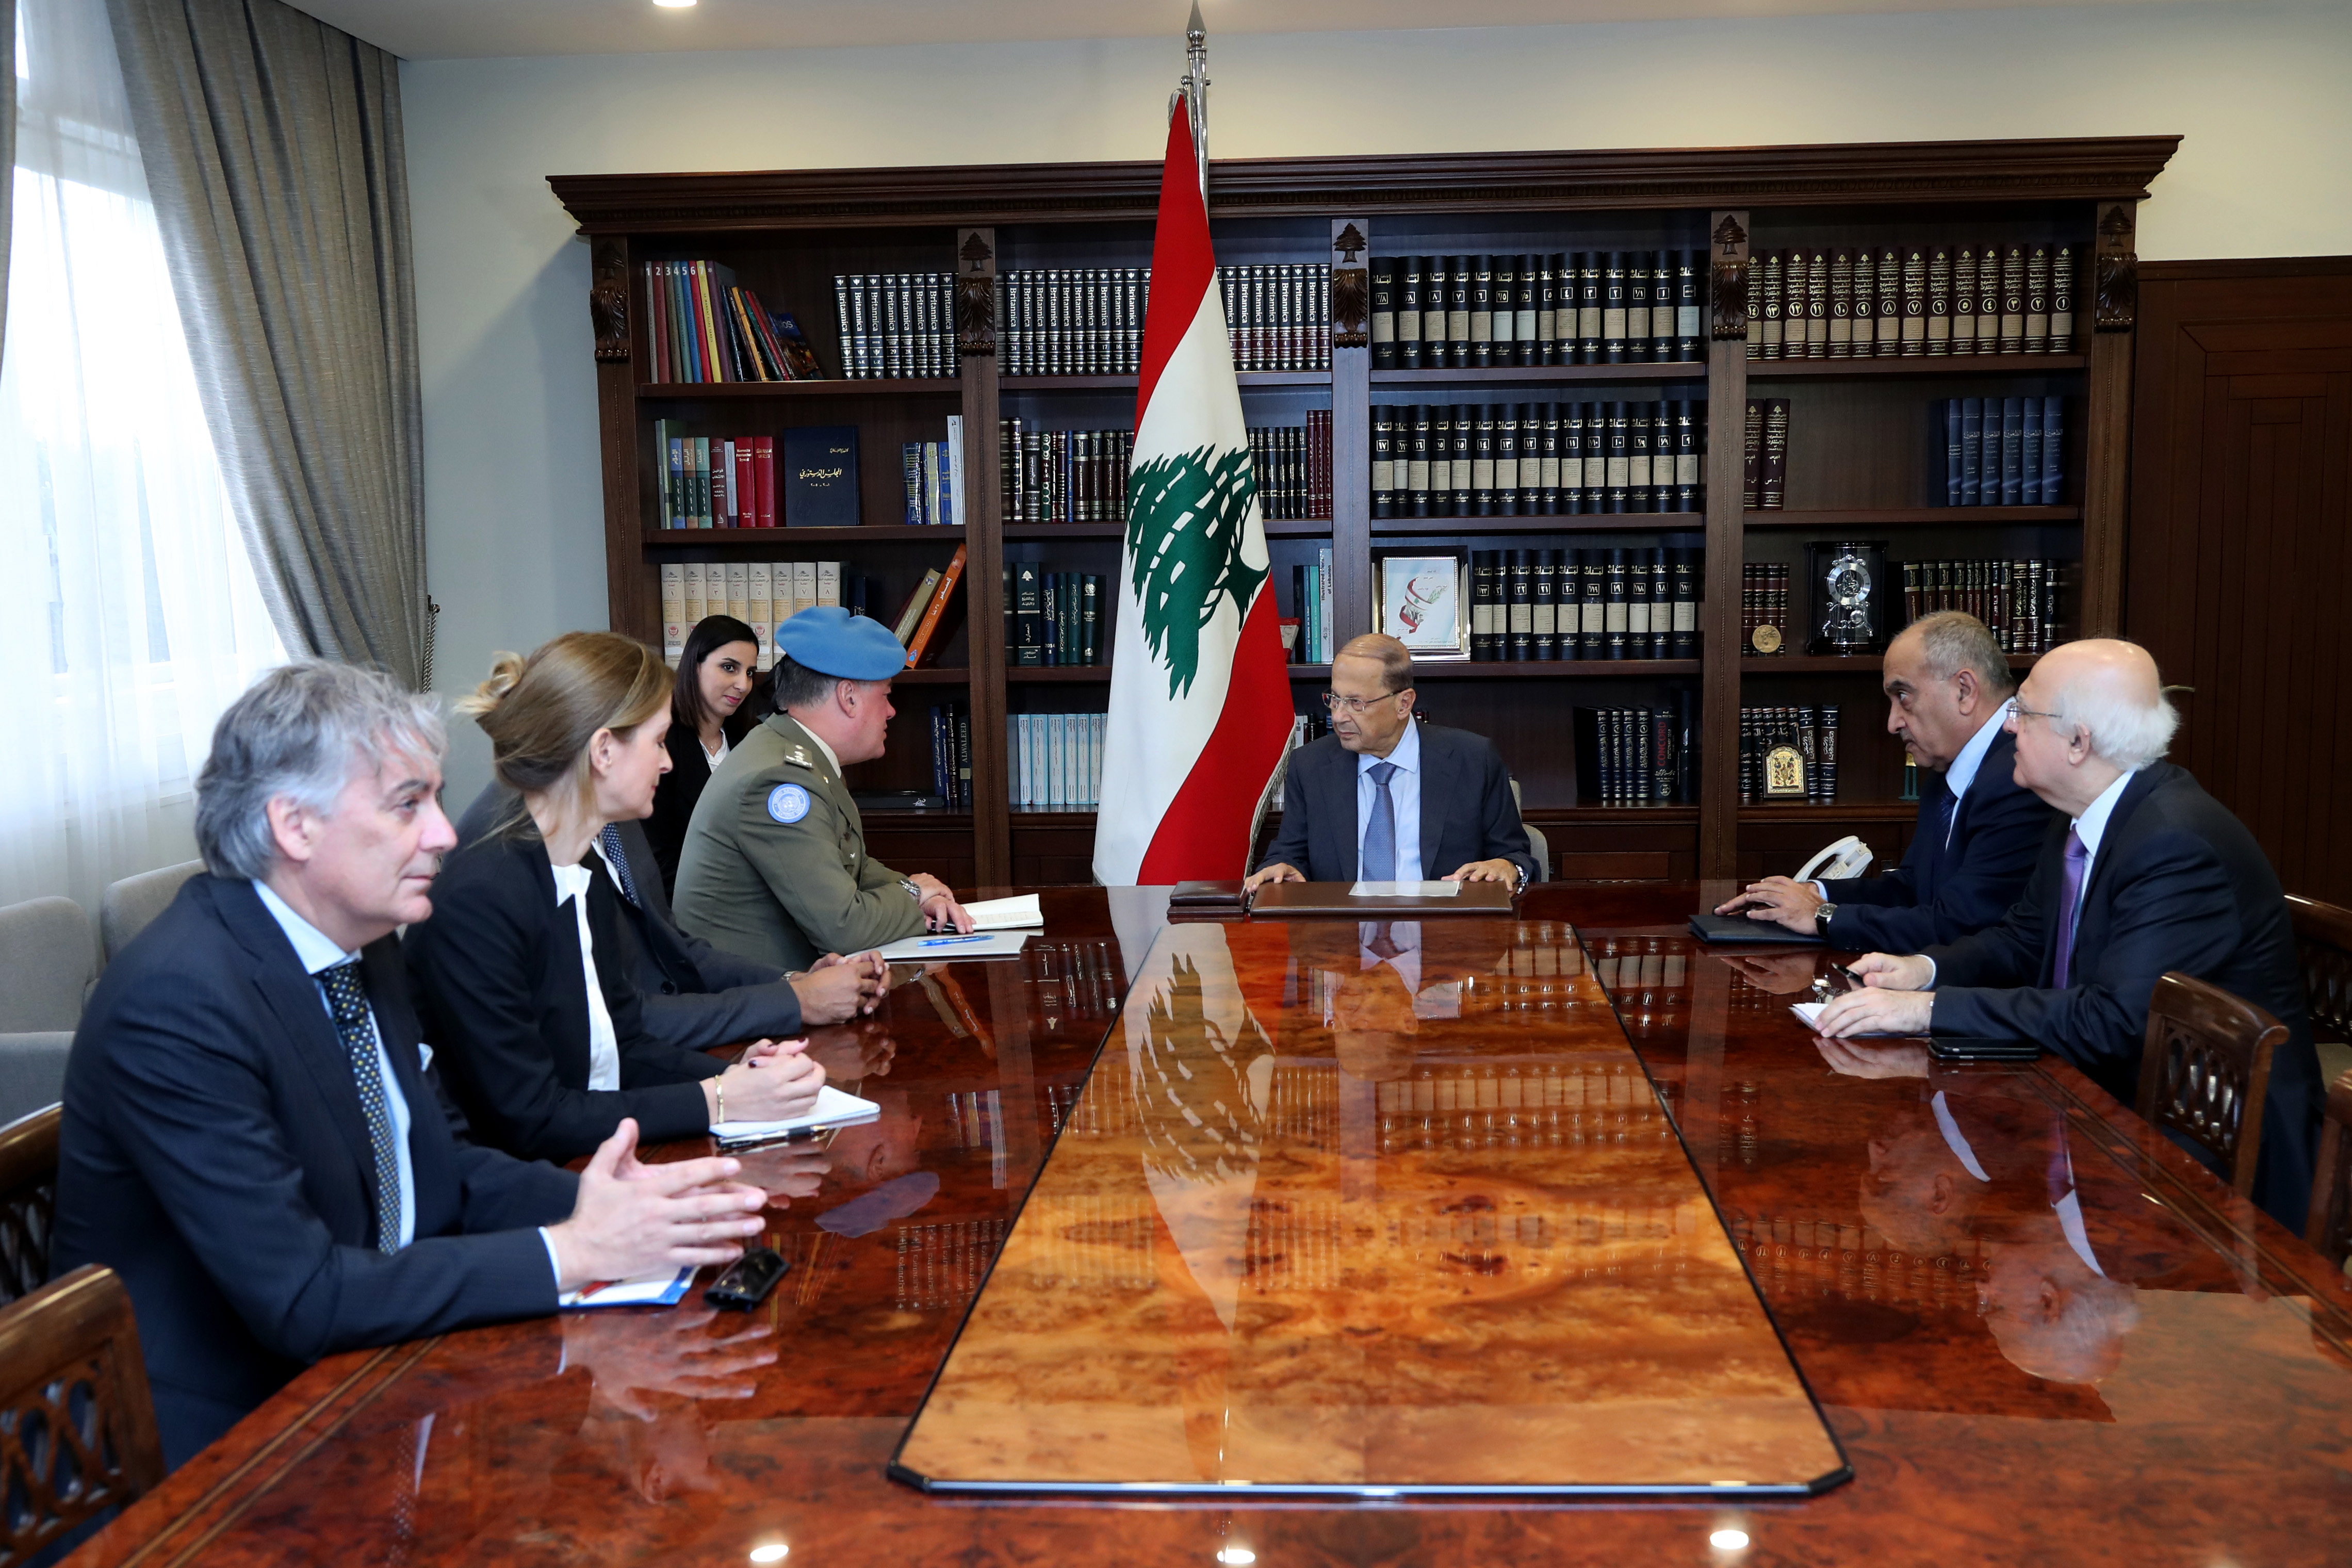 2 - Head of Force Commander of the United Nations Interim Force in Lebanon Major General Stefano Del Col 2